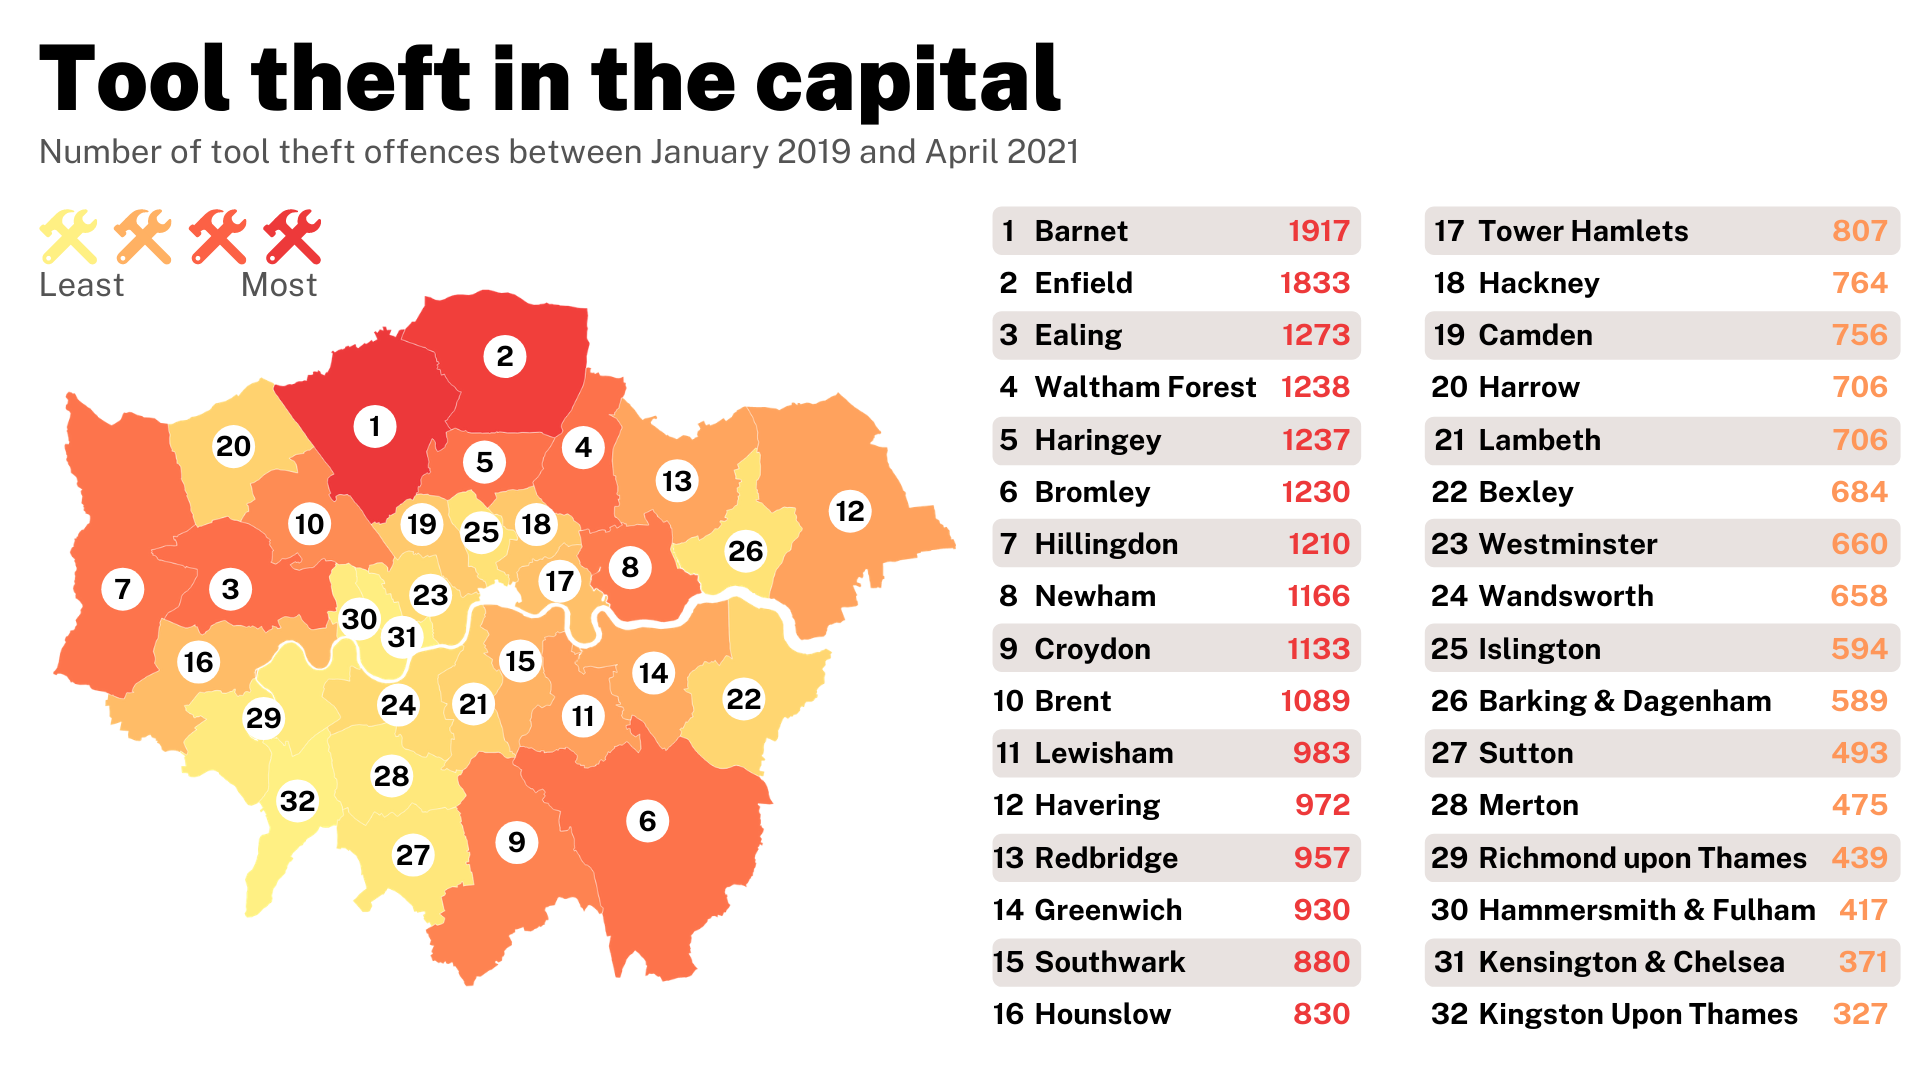 Tool Theft in the Capital by london borough